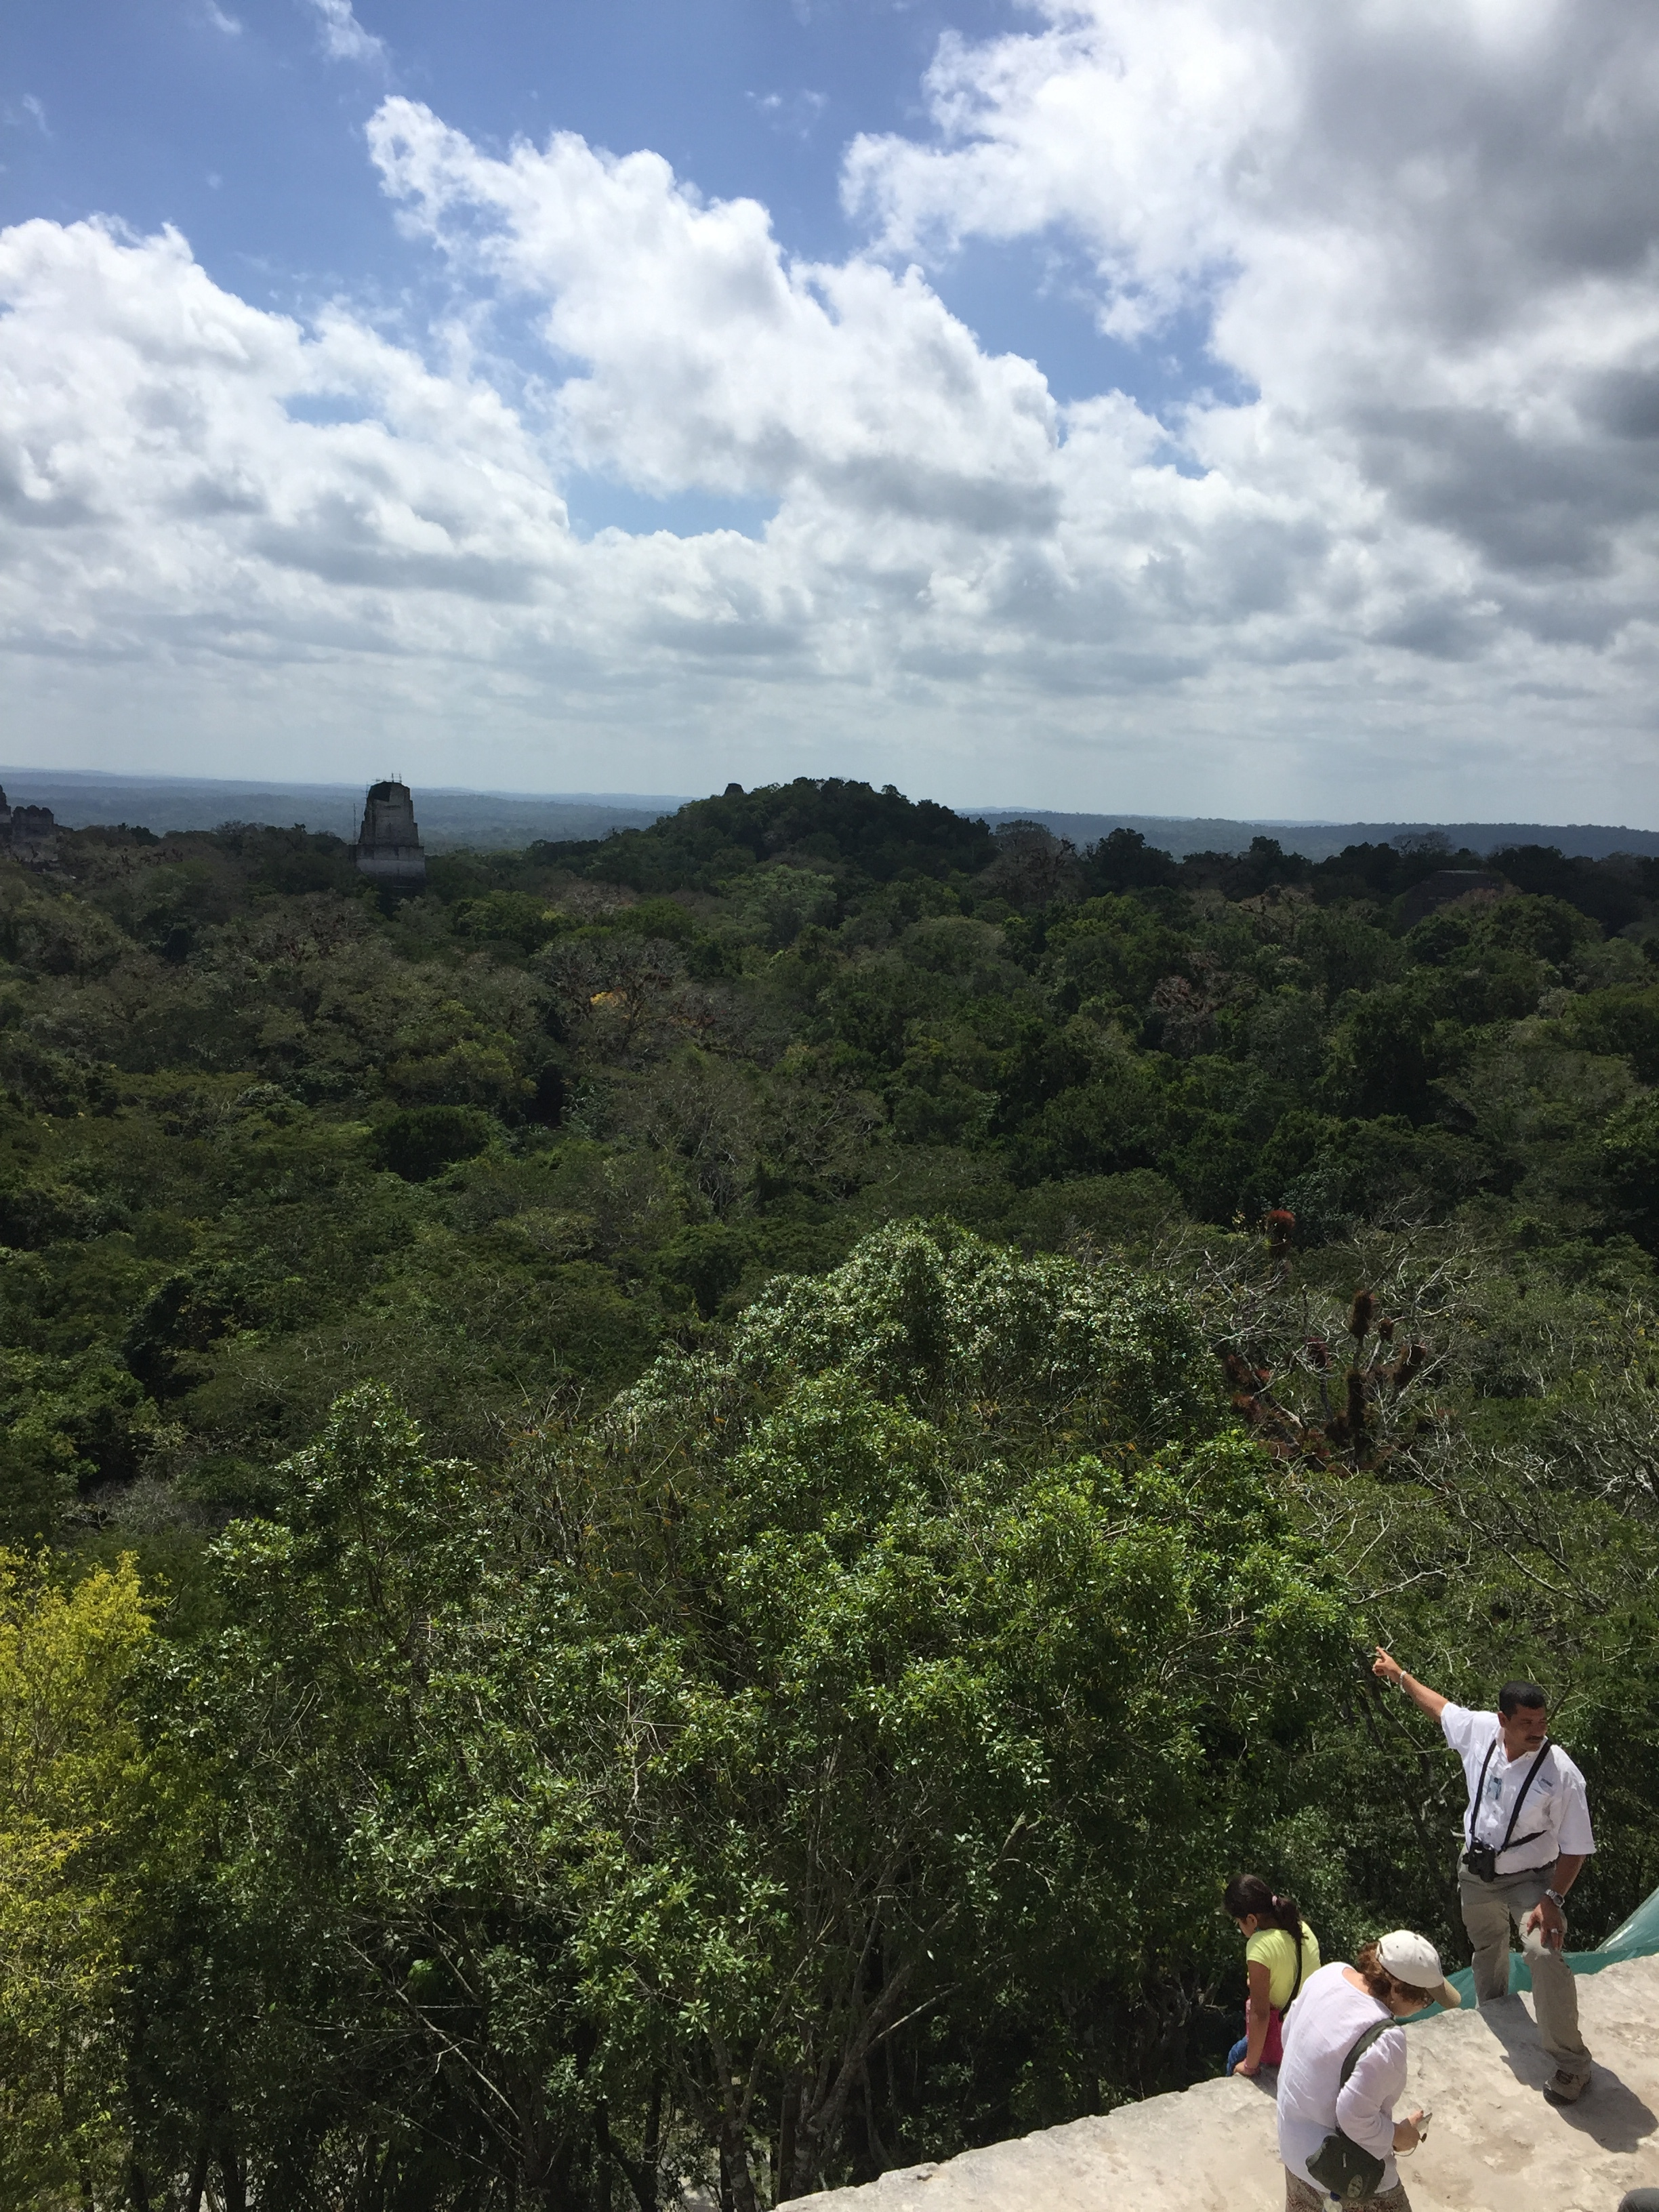 Near the entrance to Tikal National Park, our guide points across the jungle to the tallest ruin of Tikal,